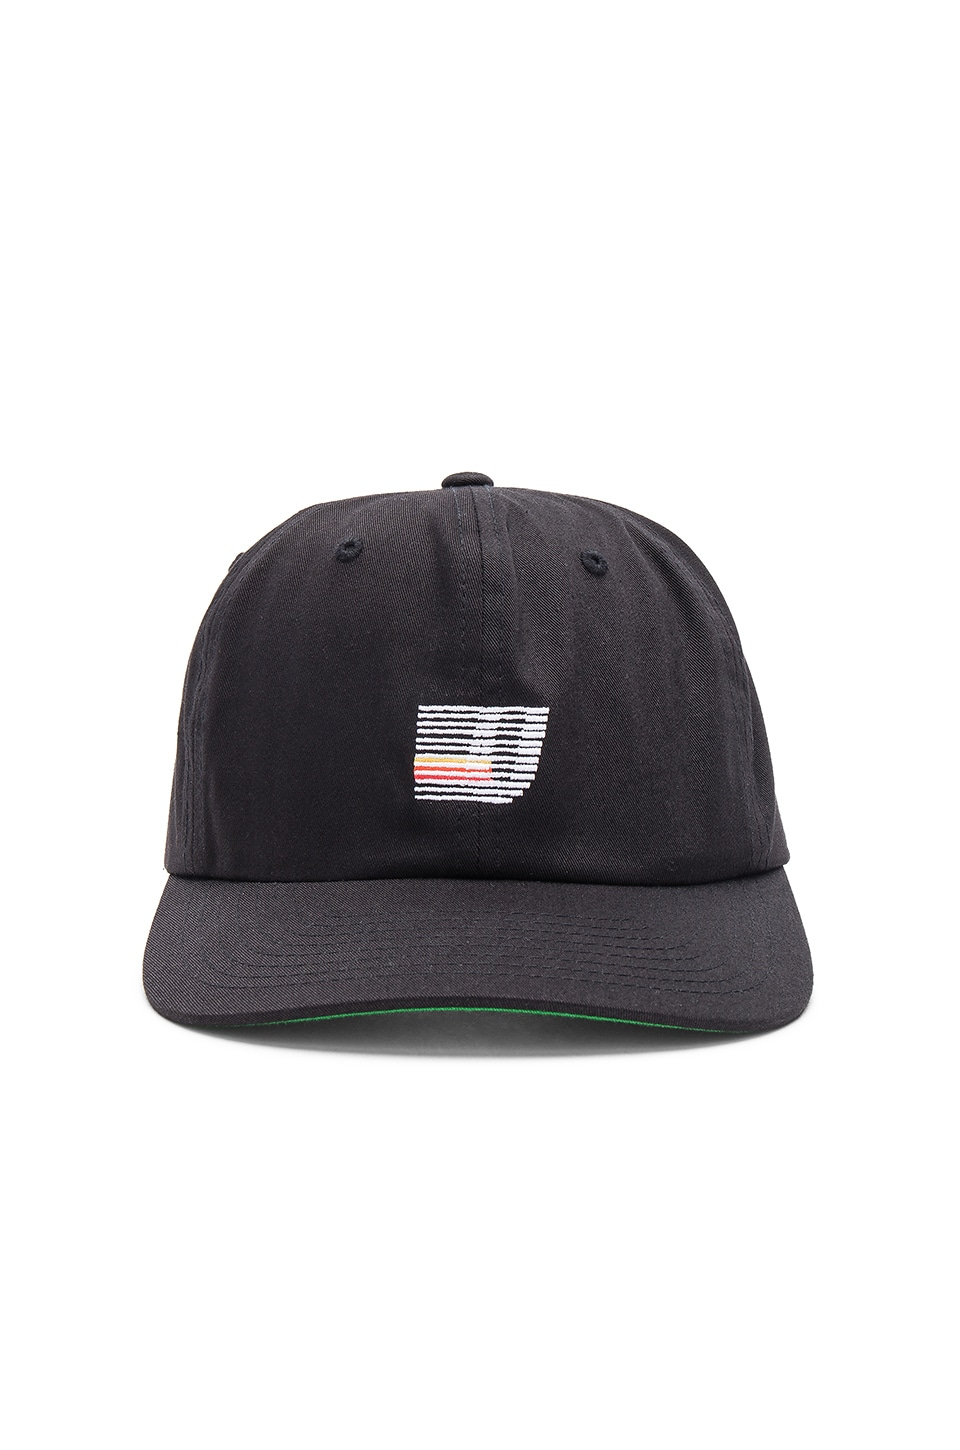 Speed Stripe Strapback by Undefeated